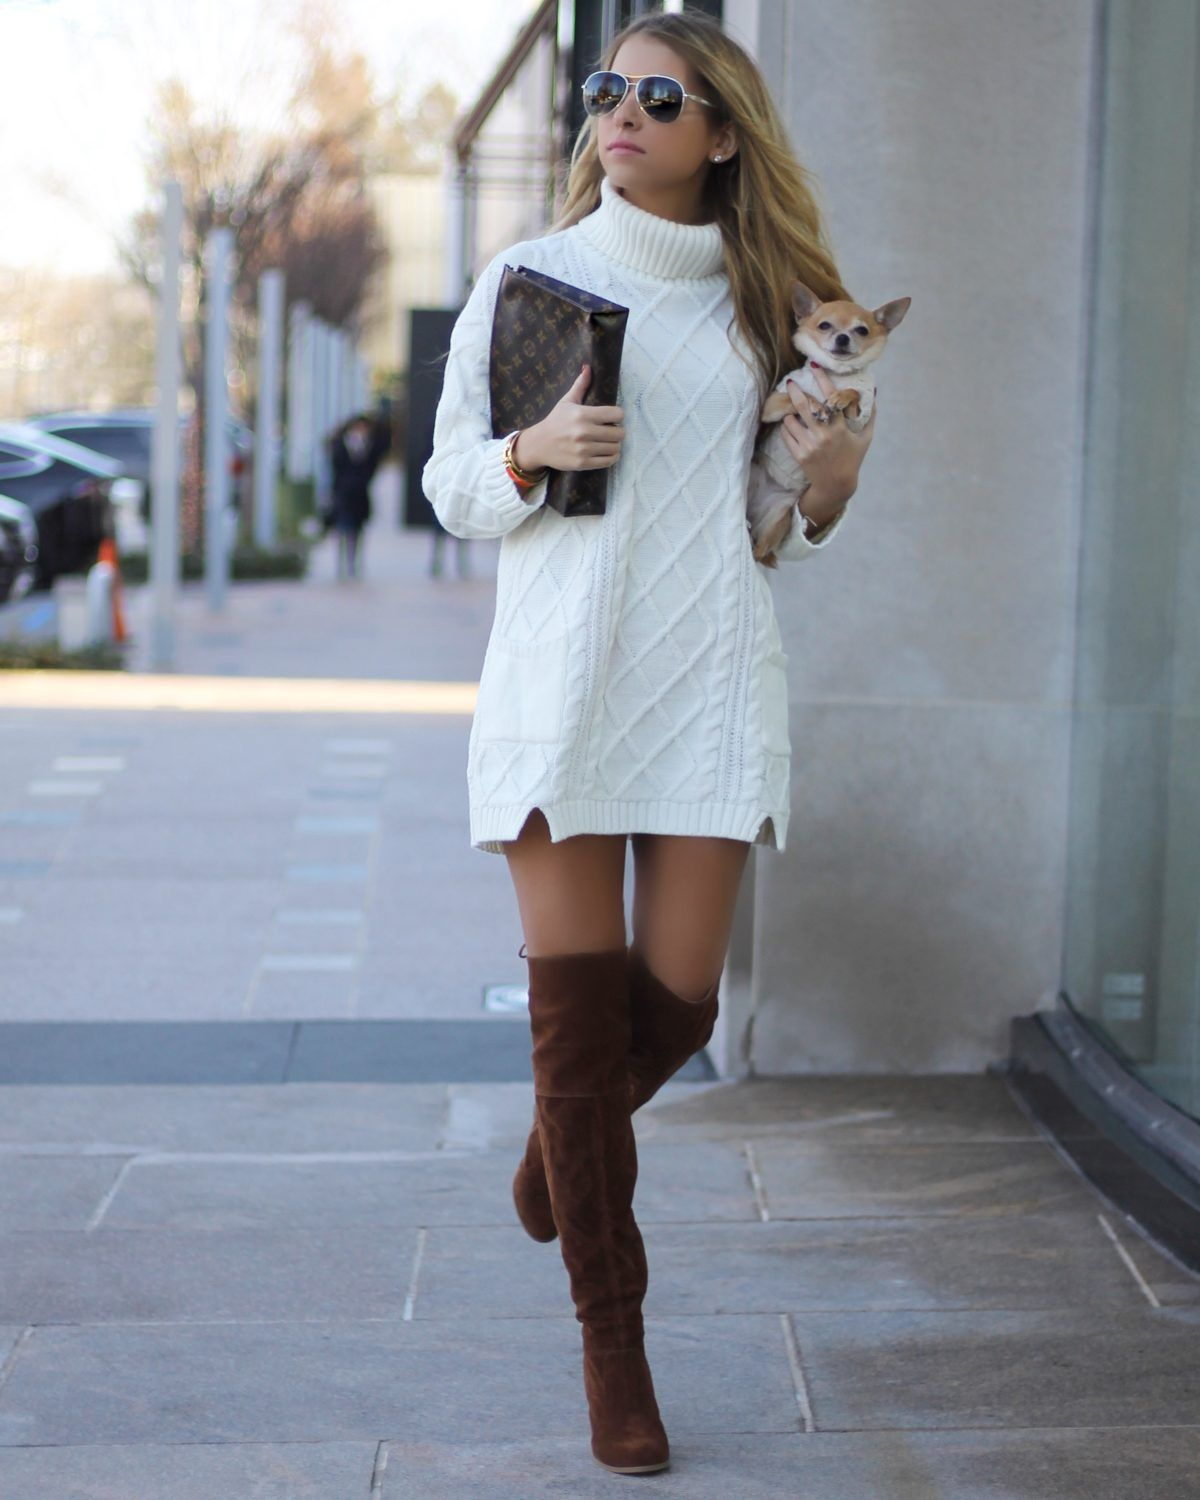 635541cb714 Sweater Dress   Over The Knee Boots - Style It With Trix - Fashion Trend